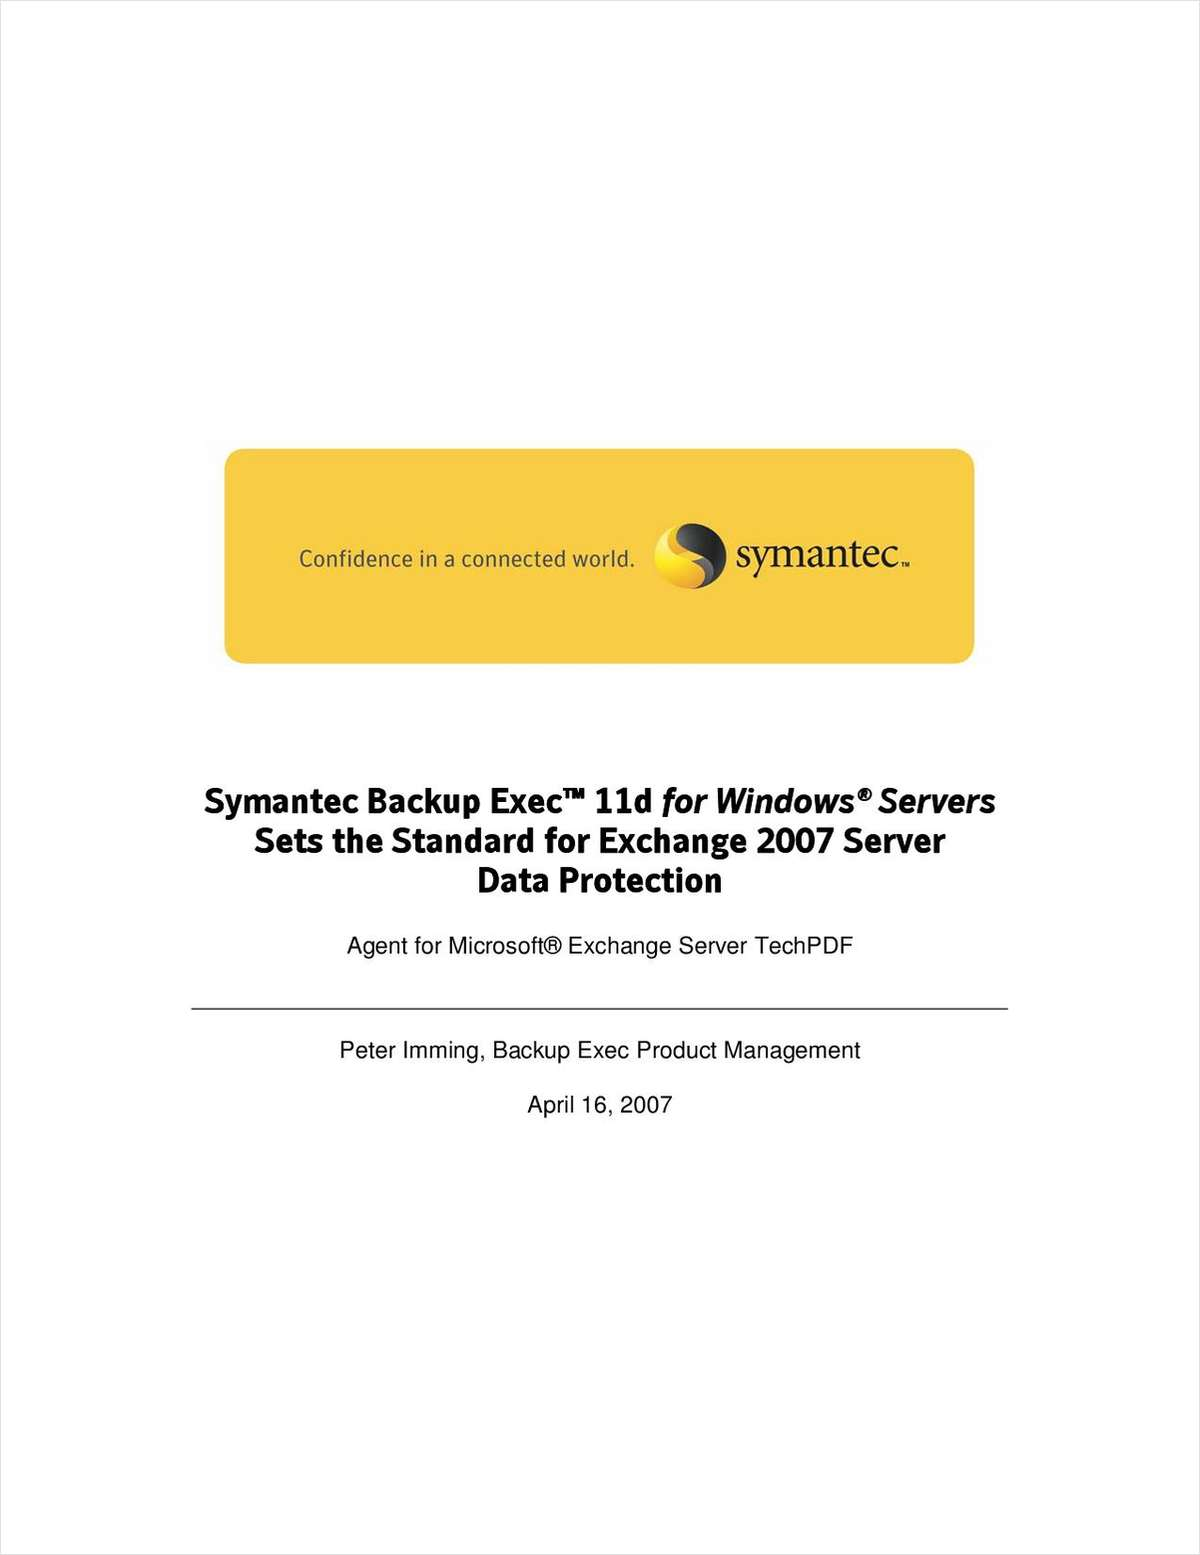 Symantec Backup Exec™ 11d for Windows® Servers Sets the Standard for Exchange 2007 Server Data Protection